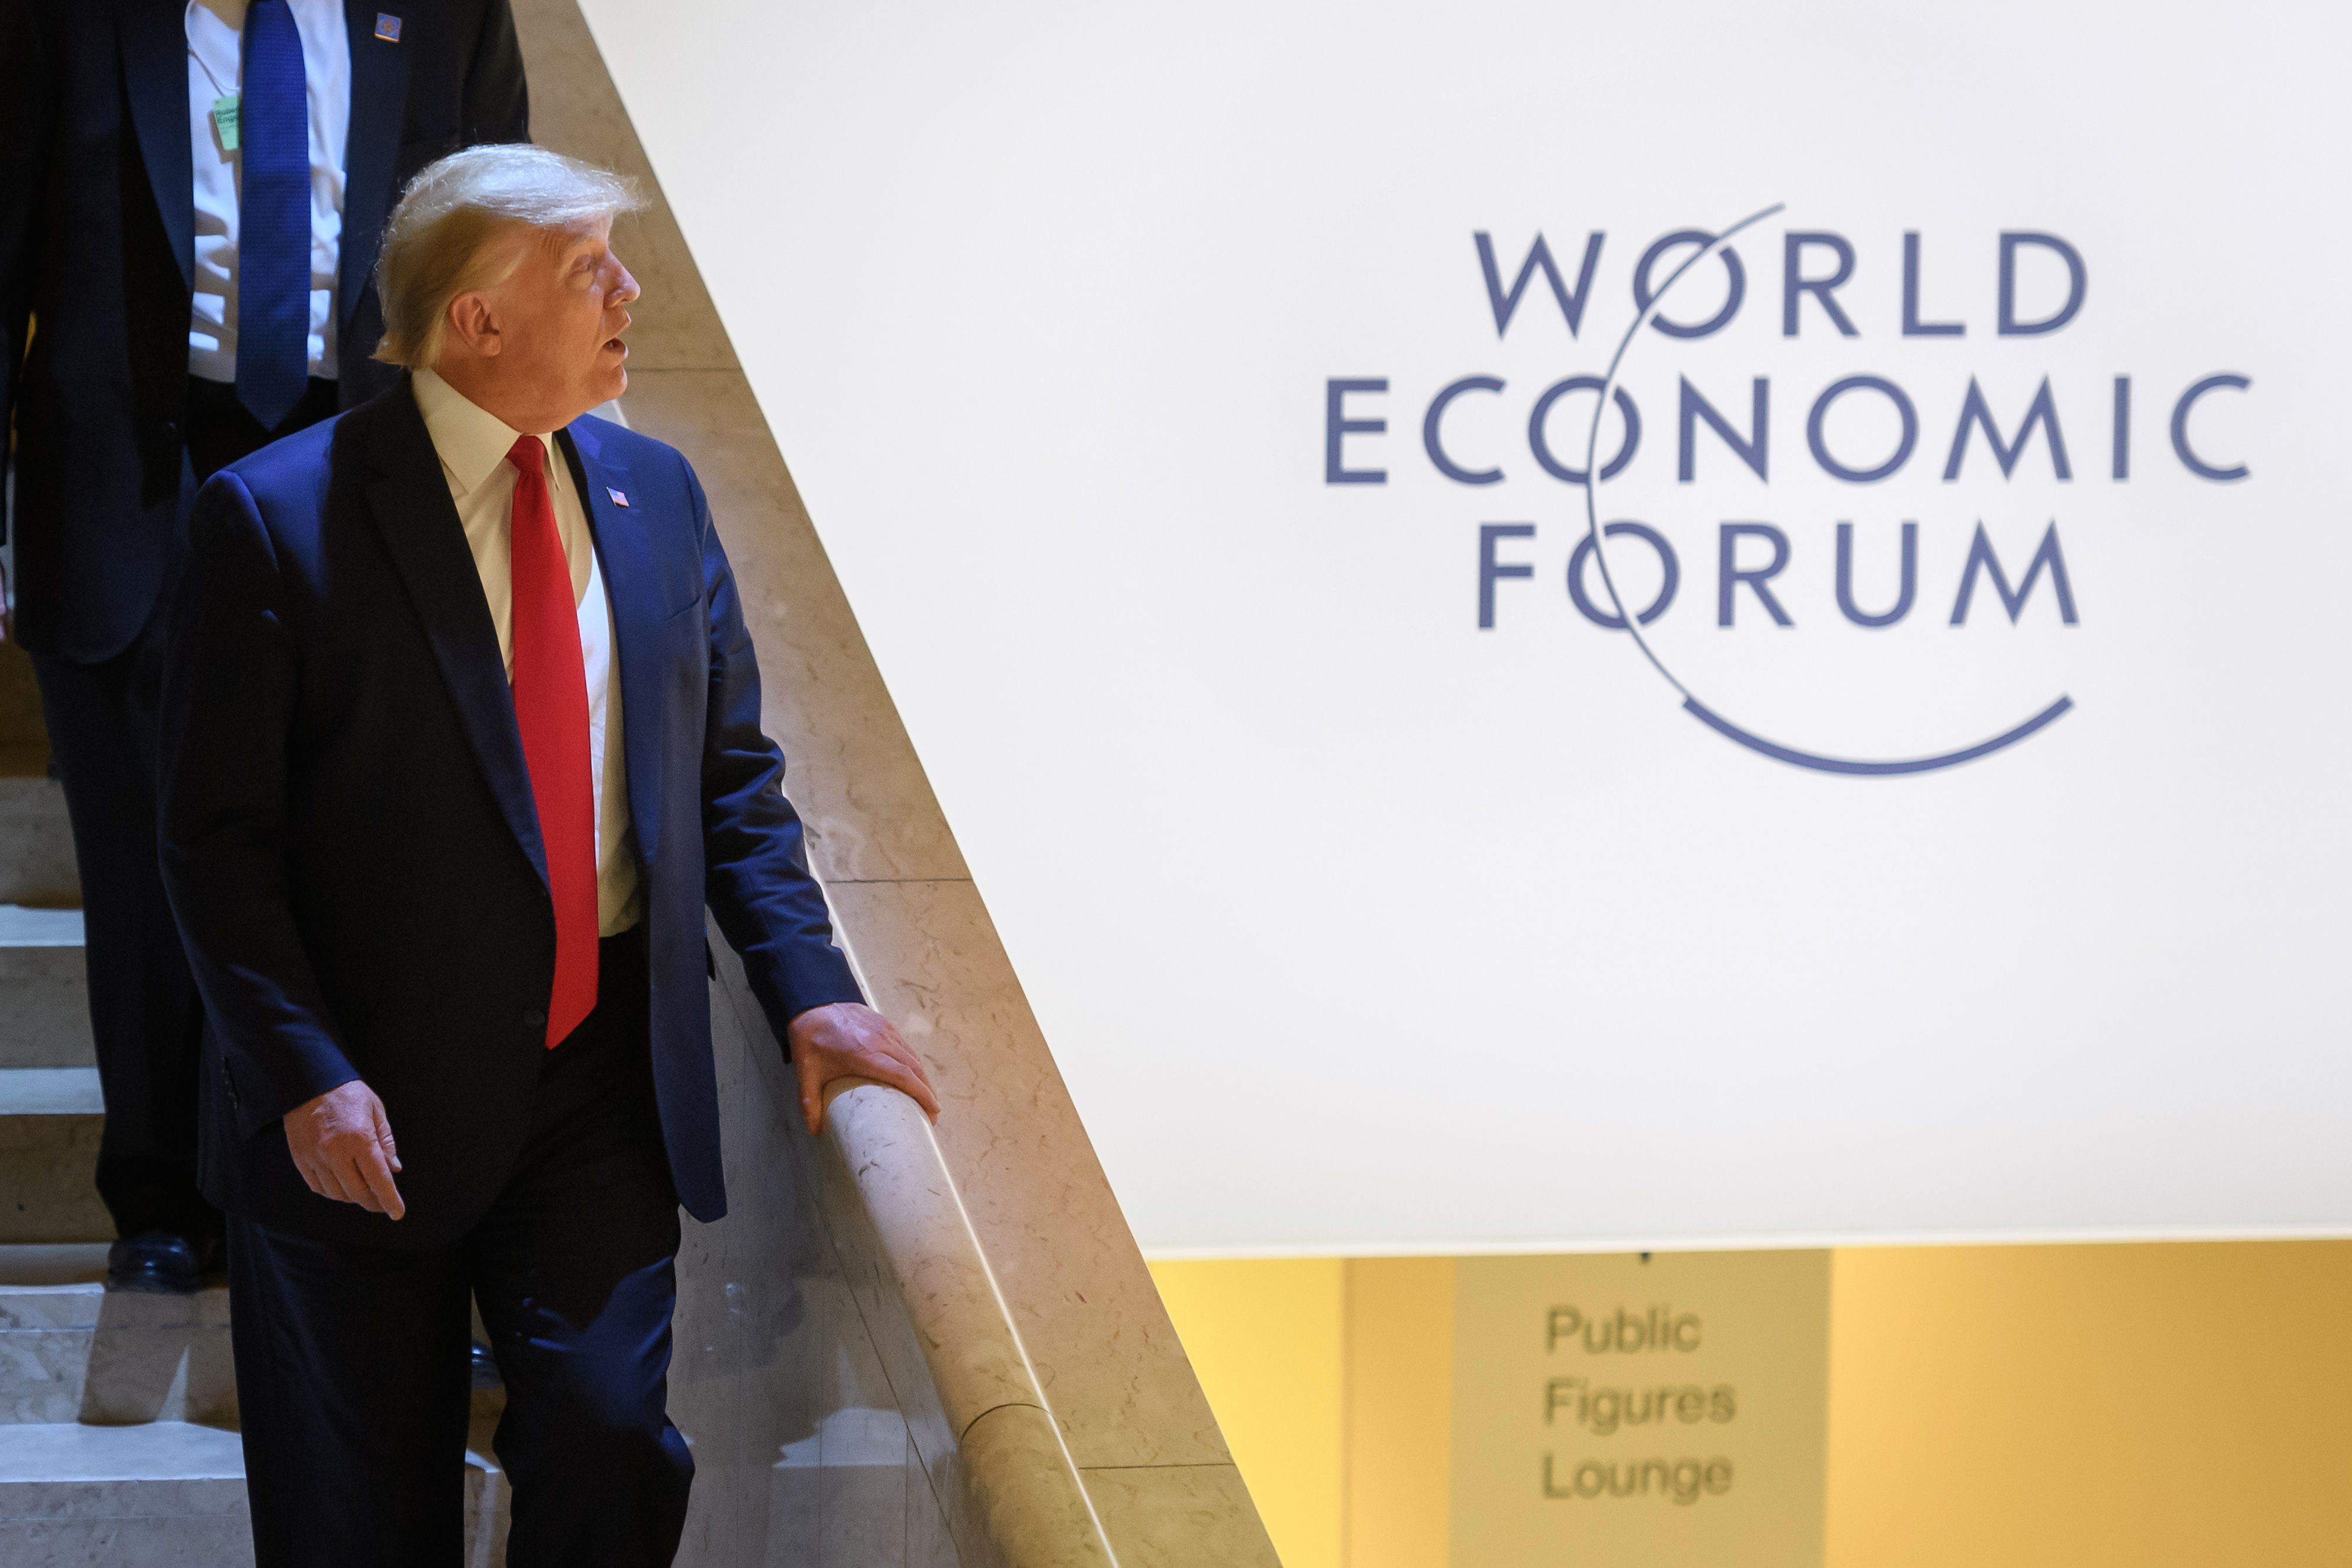 Trump meets with Apple's Cook and other tech execs in Davos - Axios